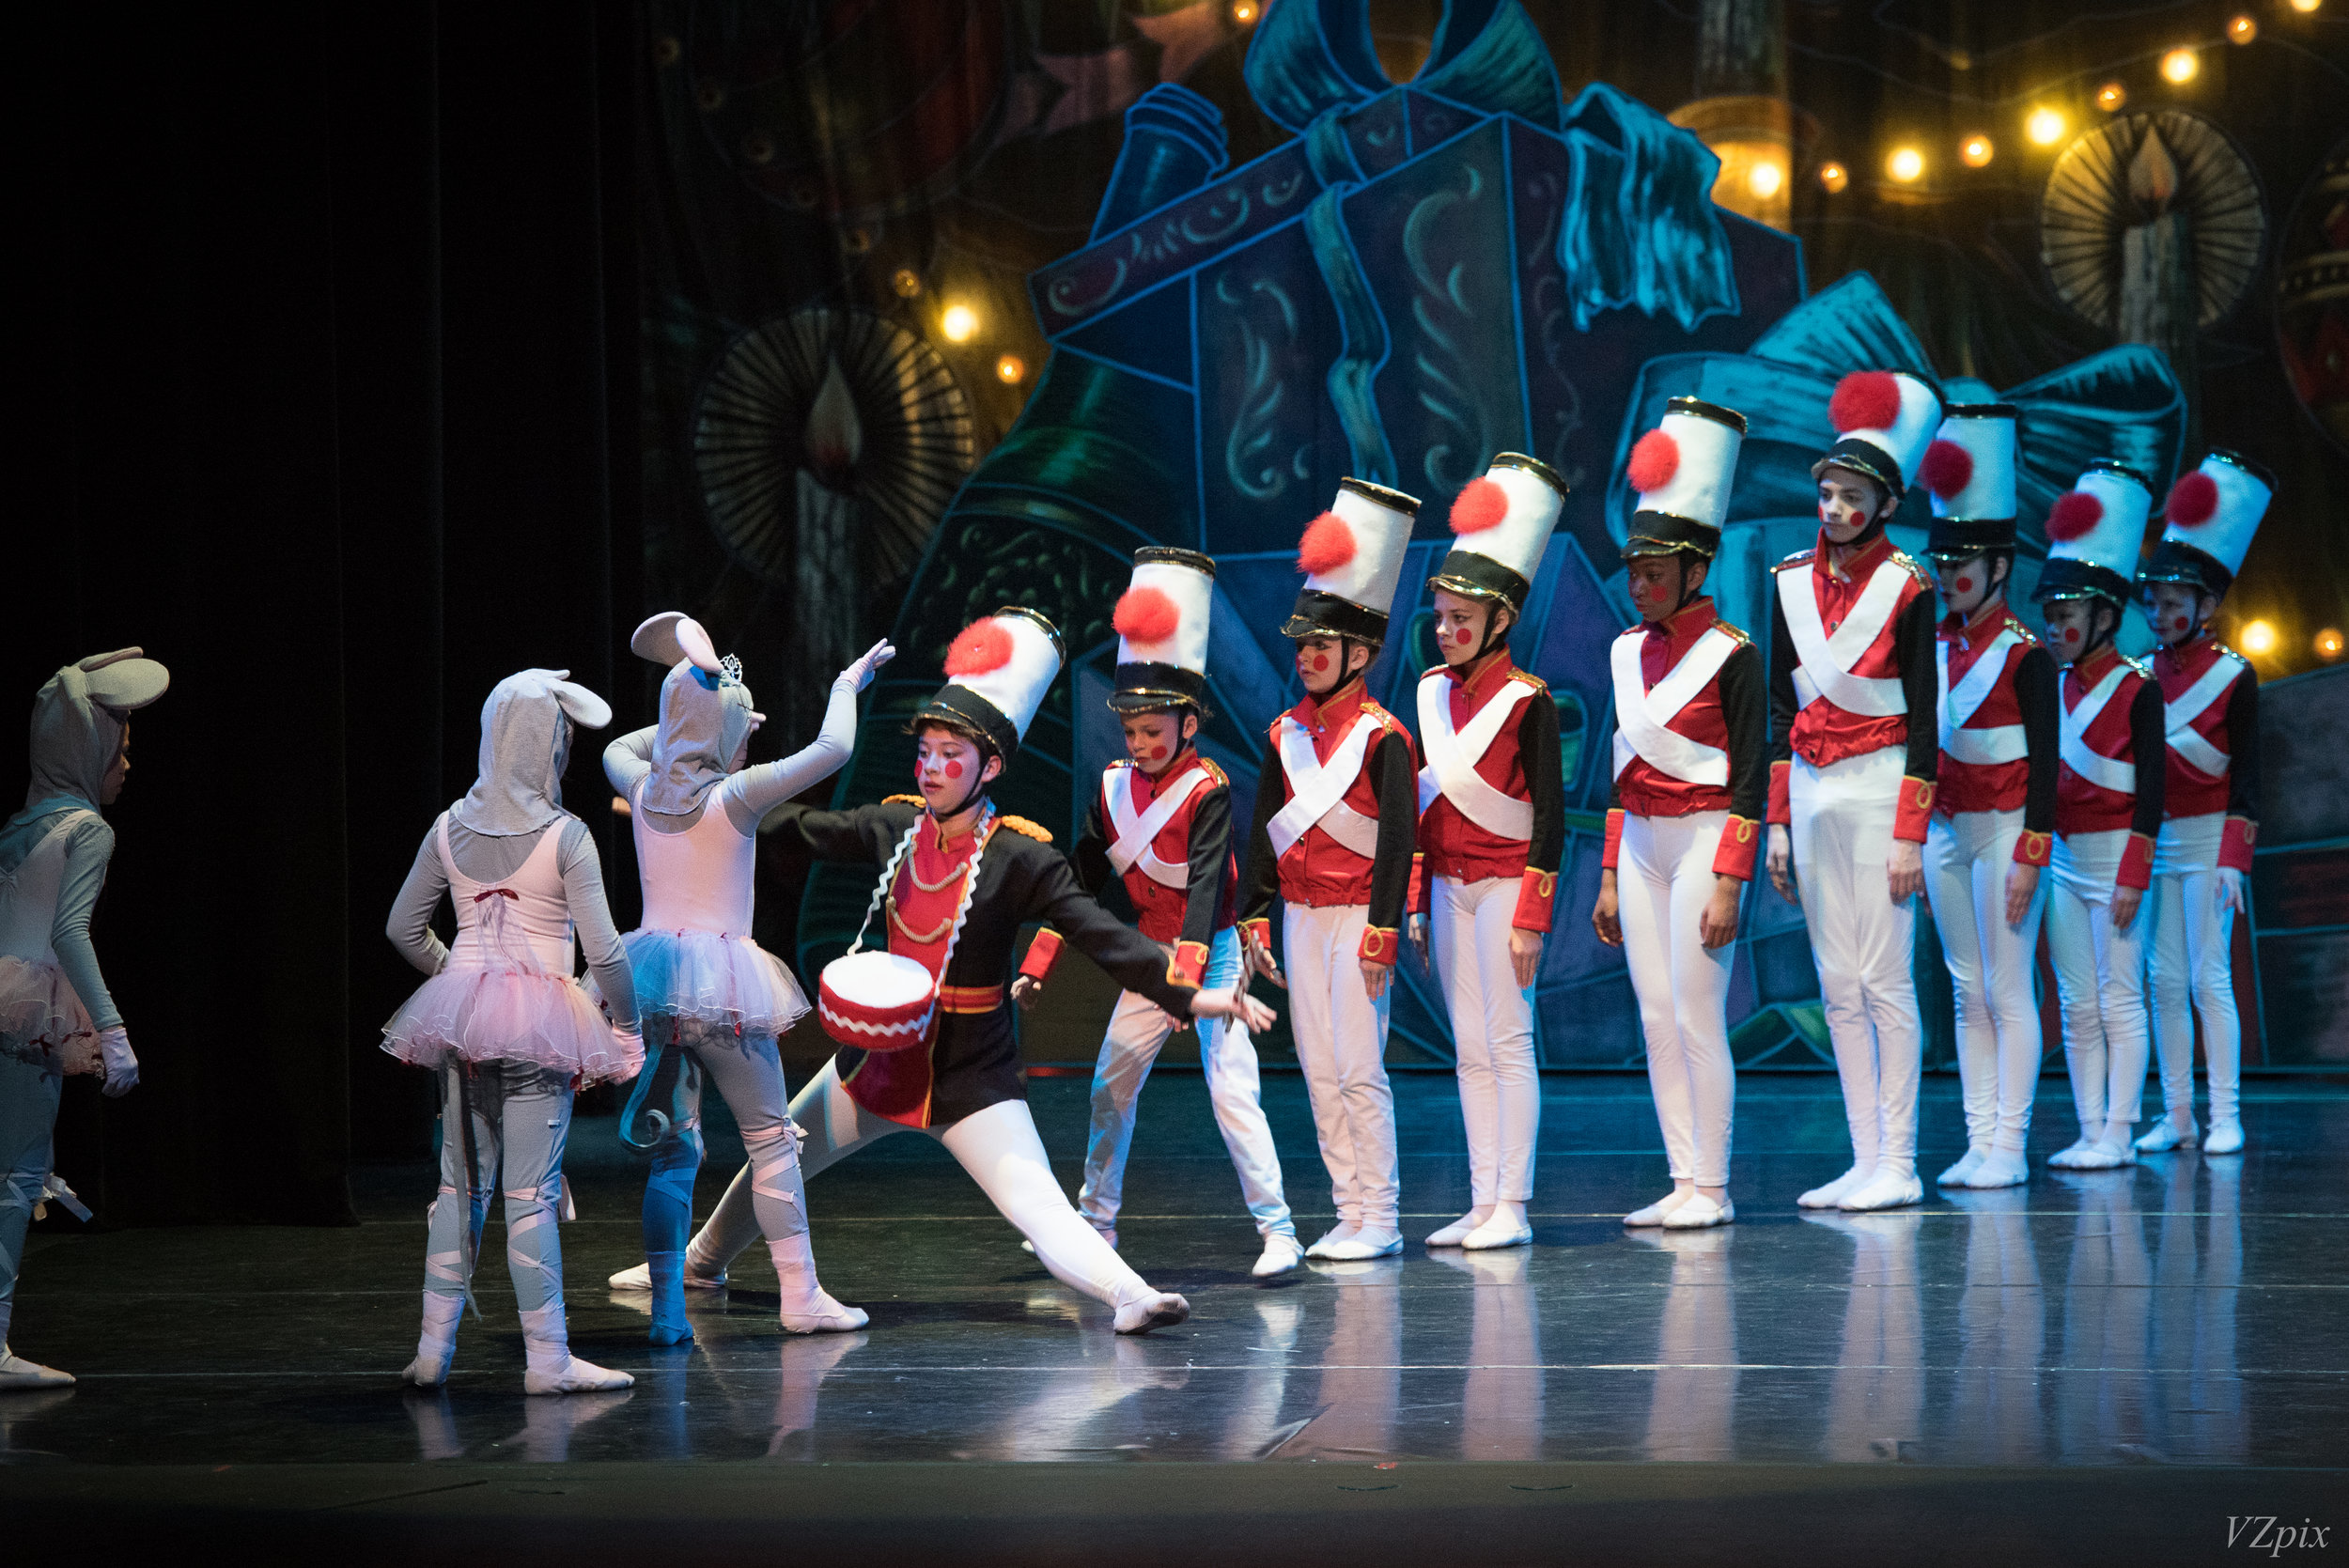 Experience Dancing & Creating The Nutcracker - Register now to secure your spot!